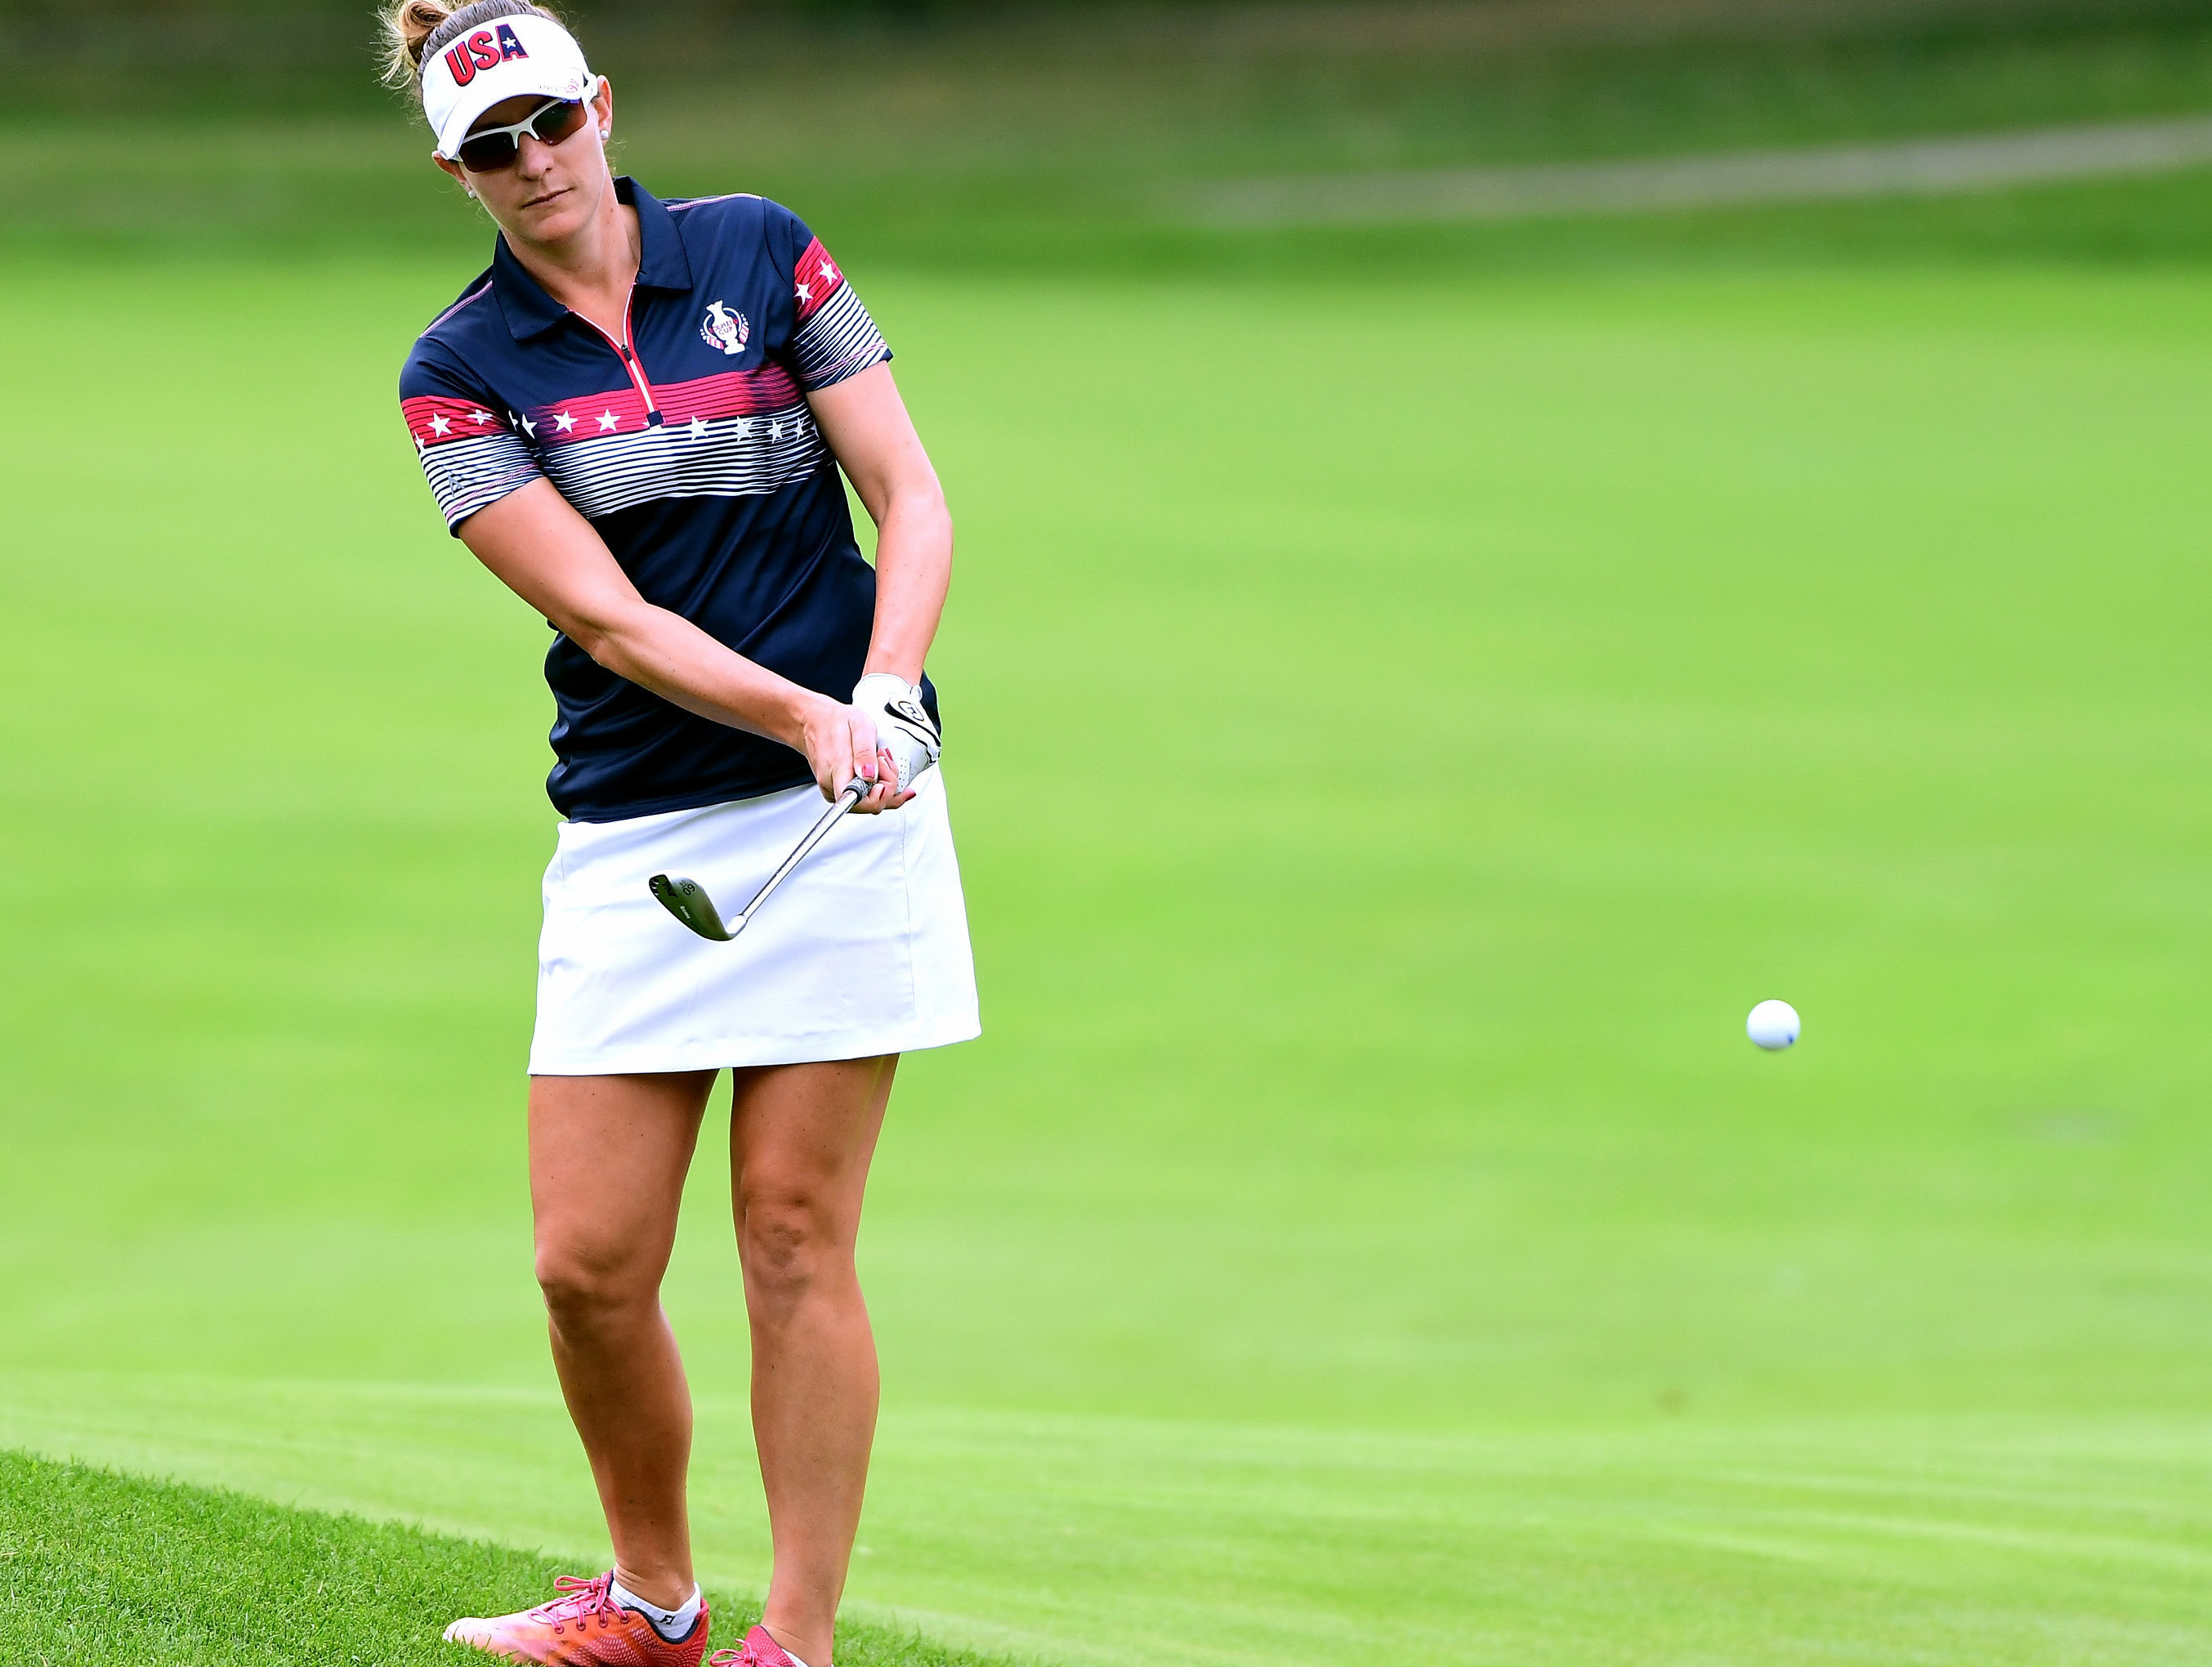 Brittany Lang of Team USA at the 2017 Solheim Cup in America.